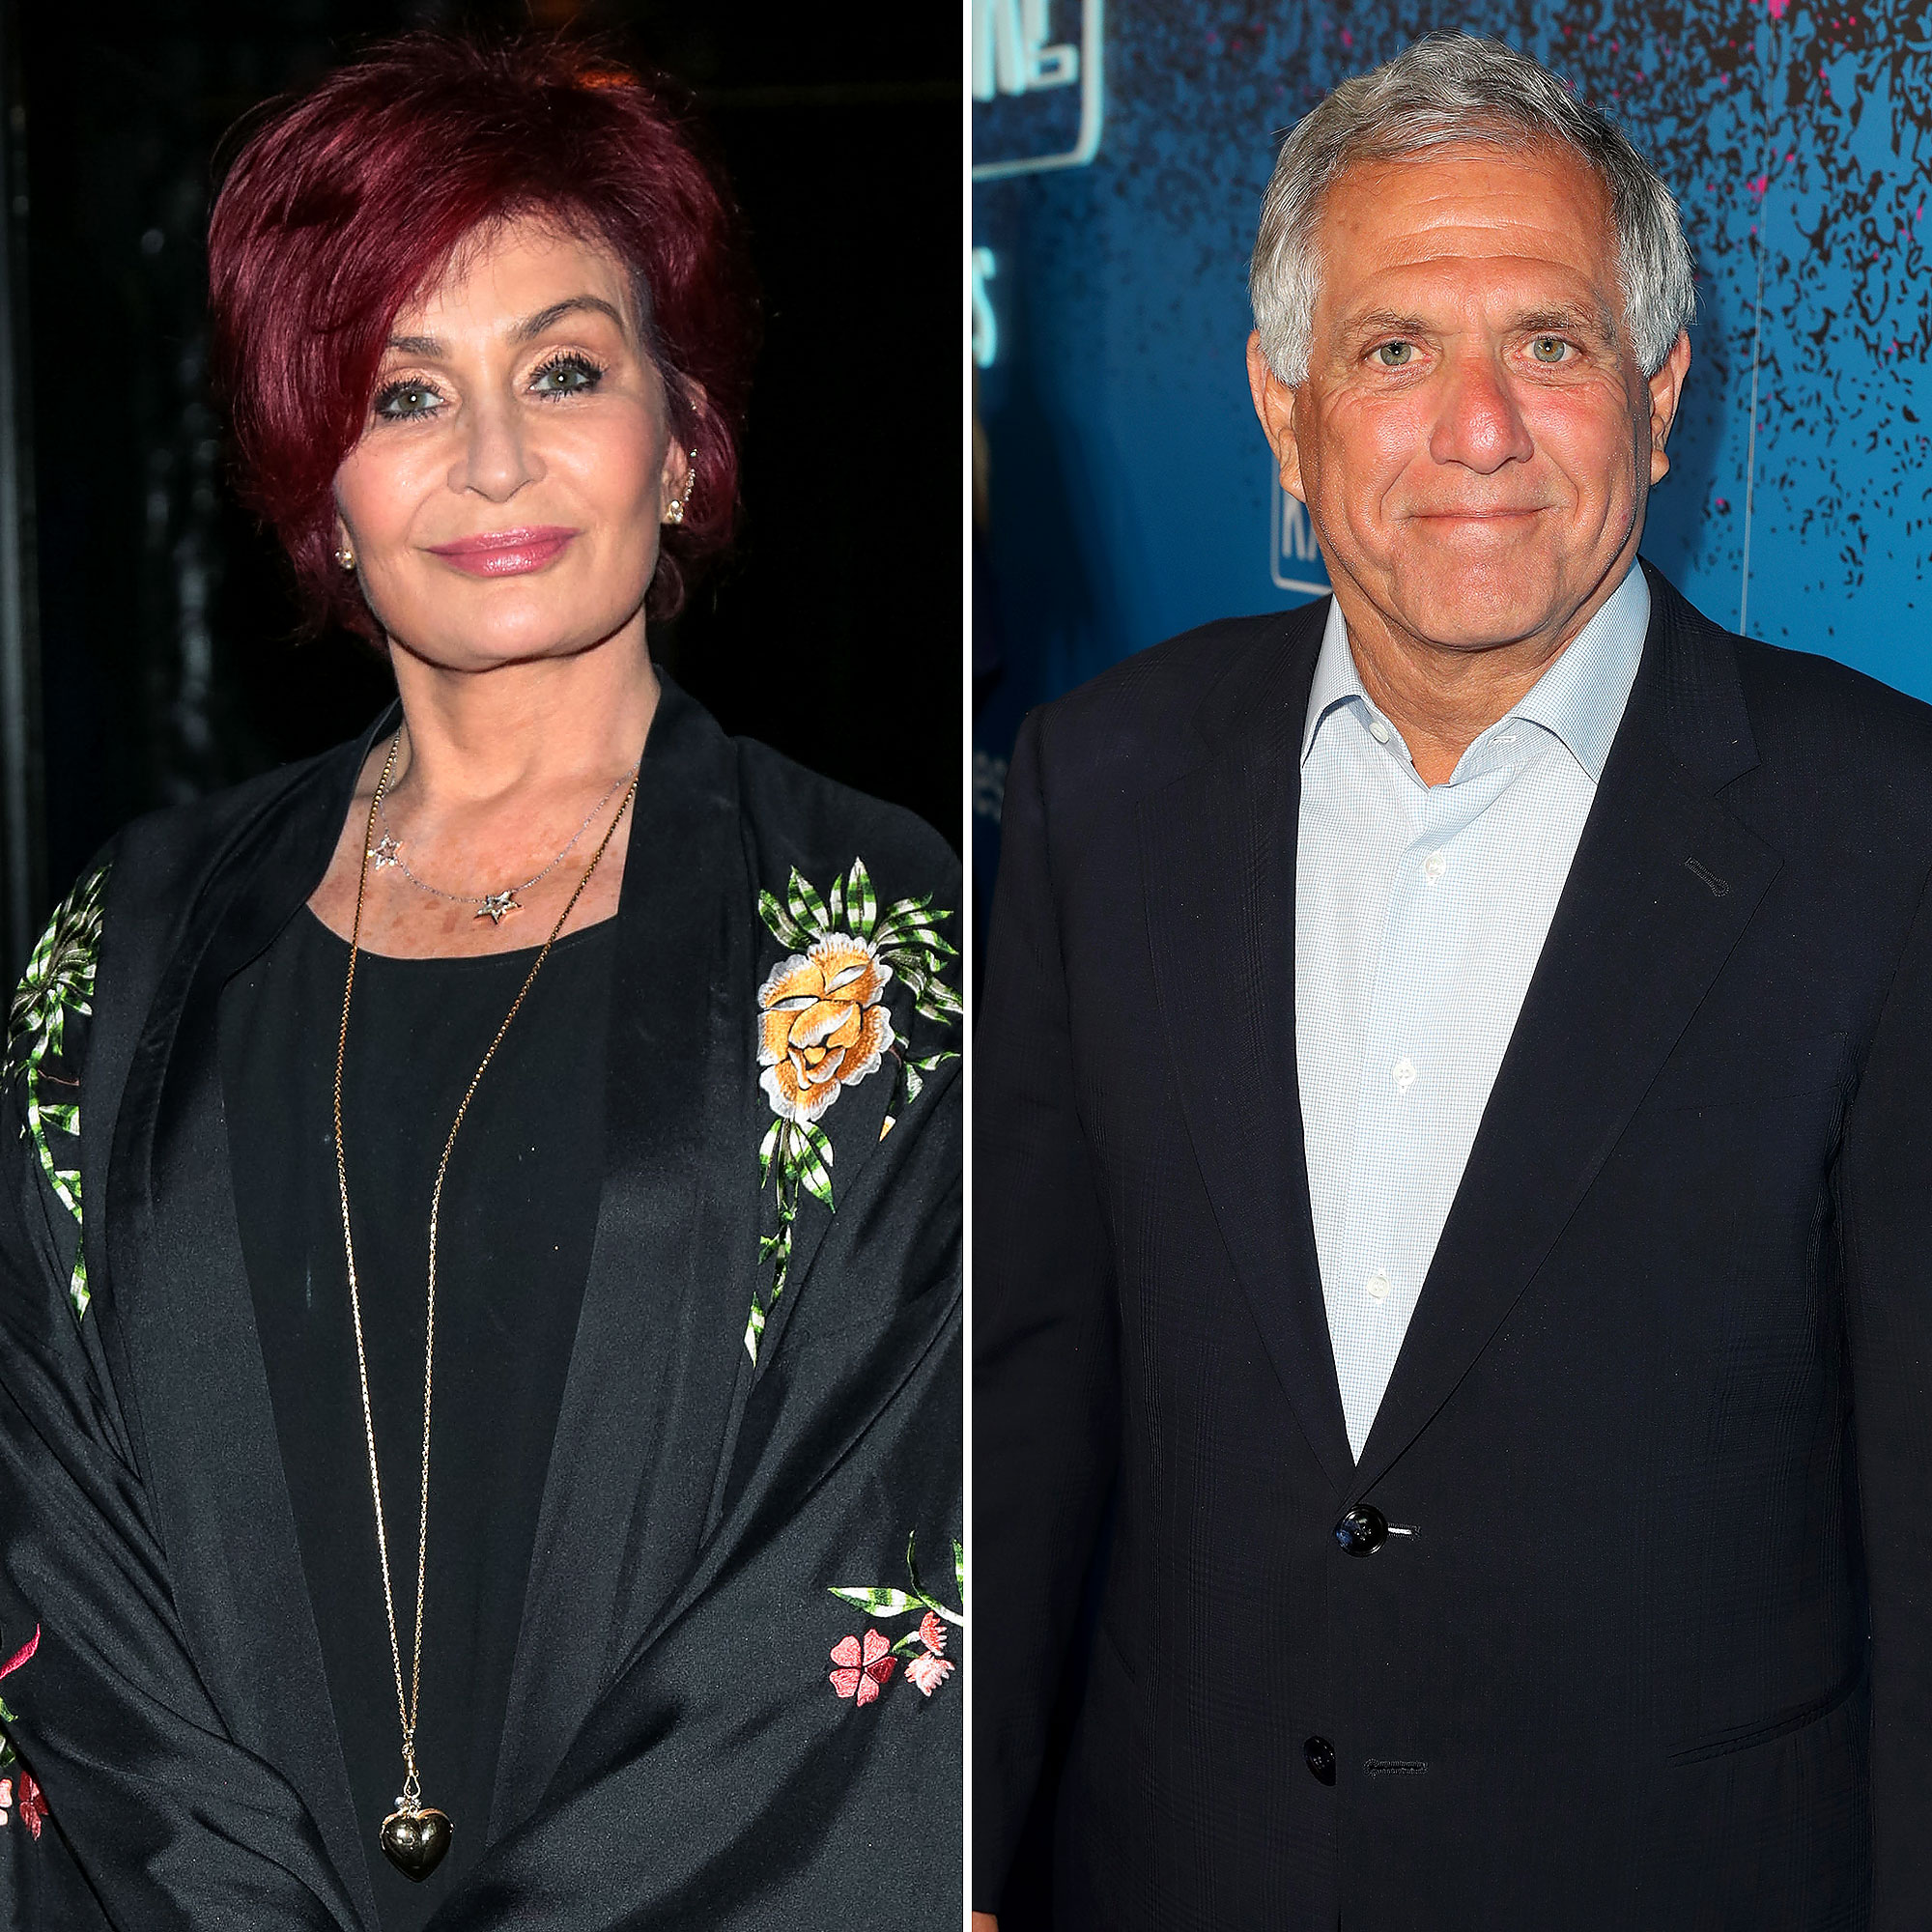 Sharon Osbourne Les Moonves